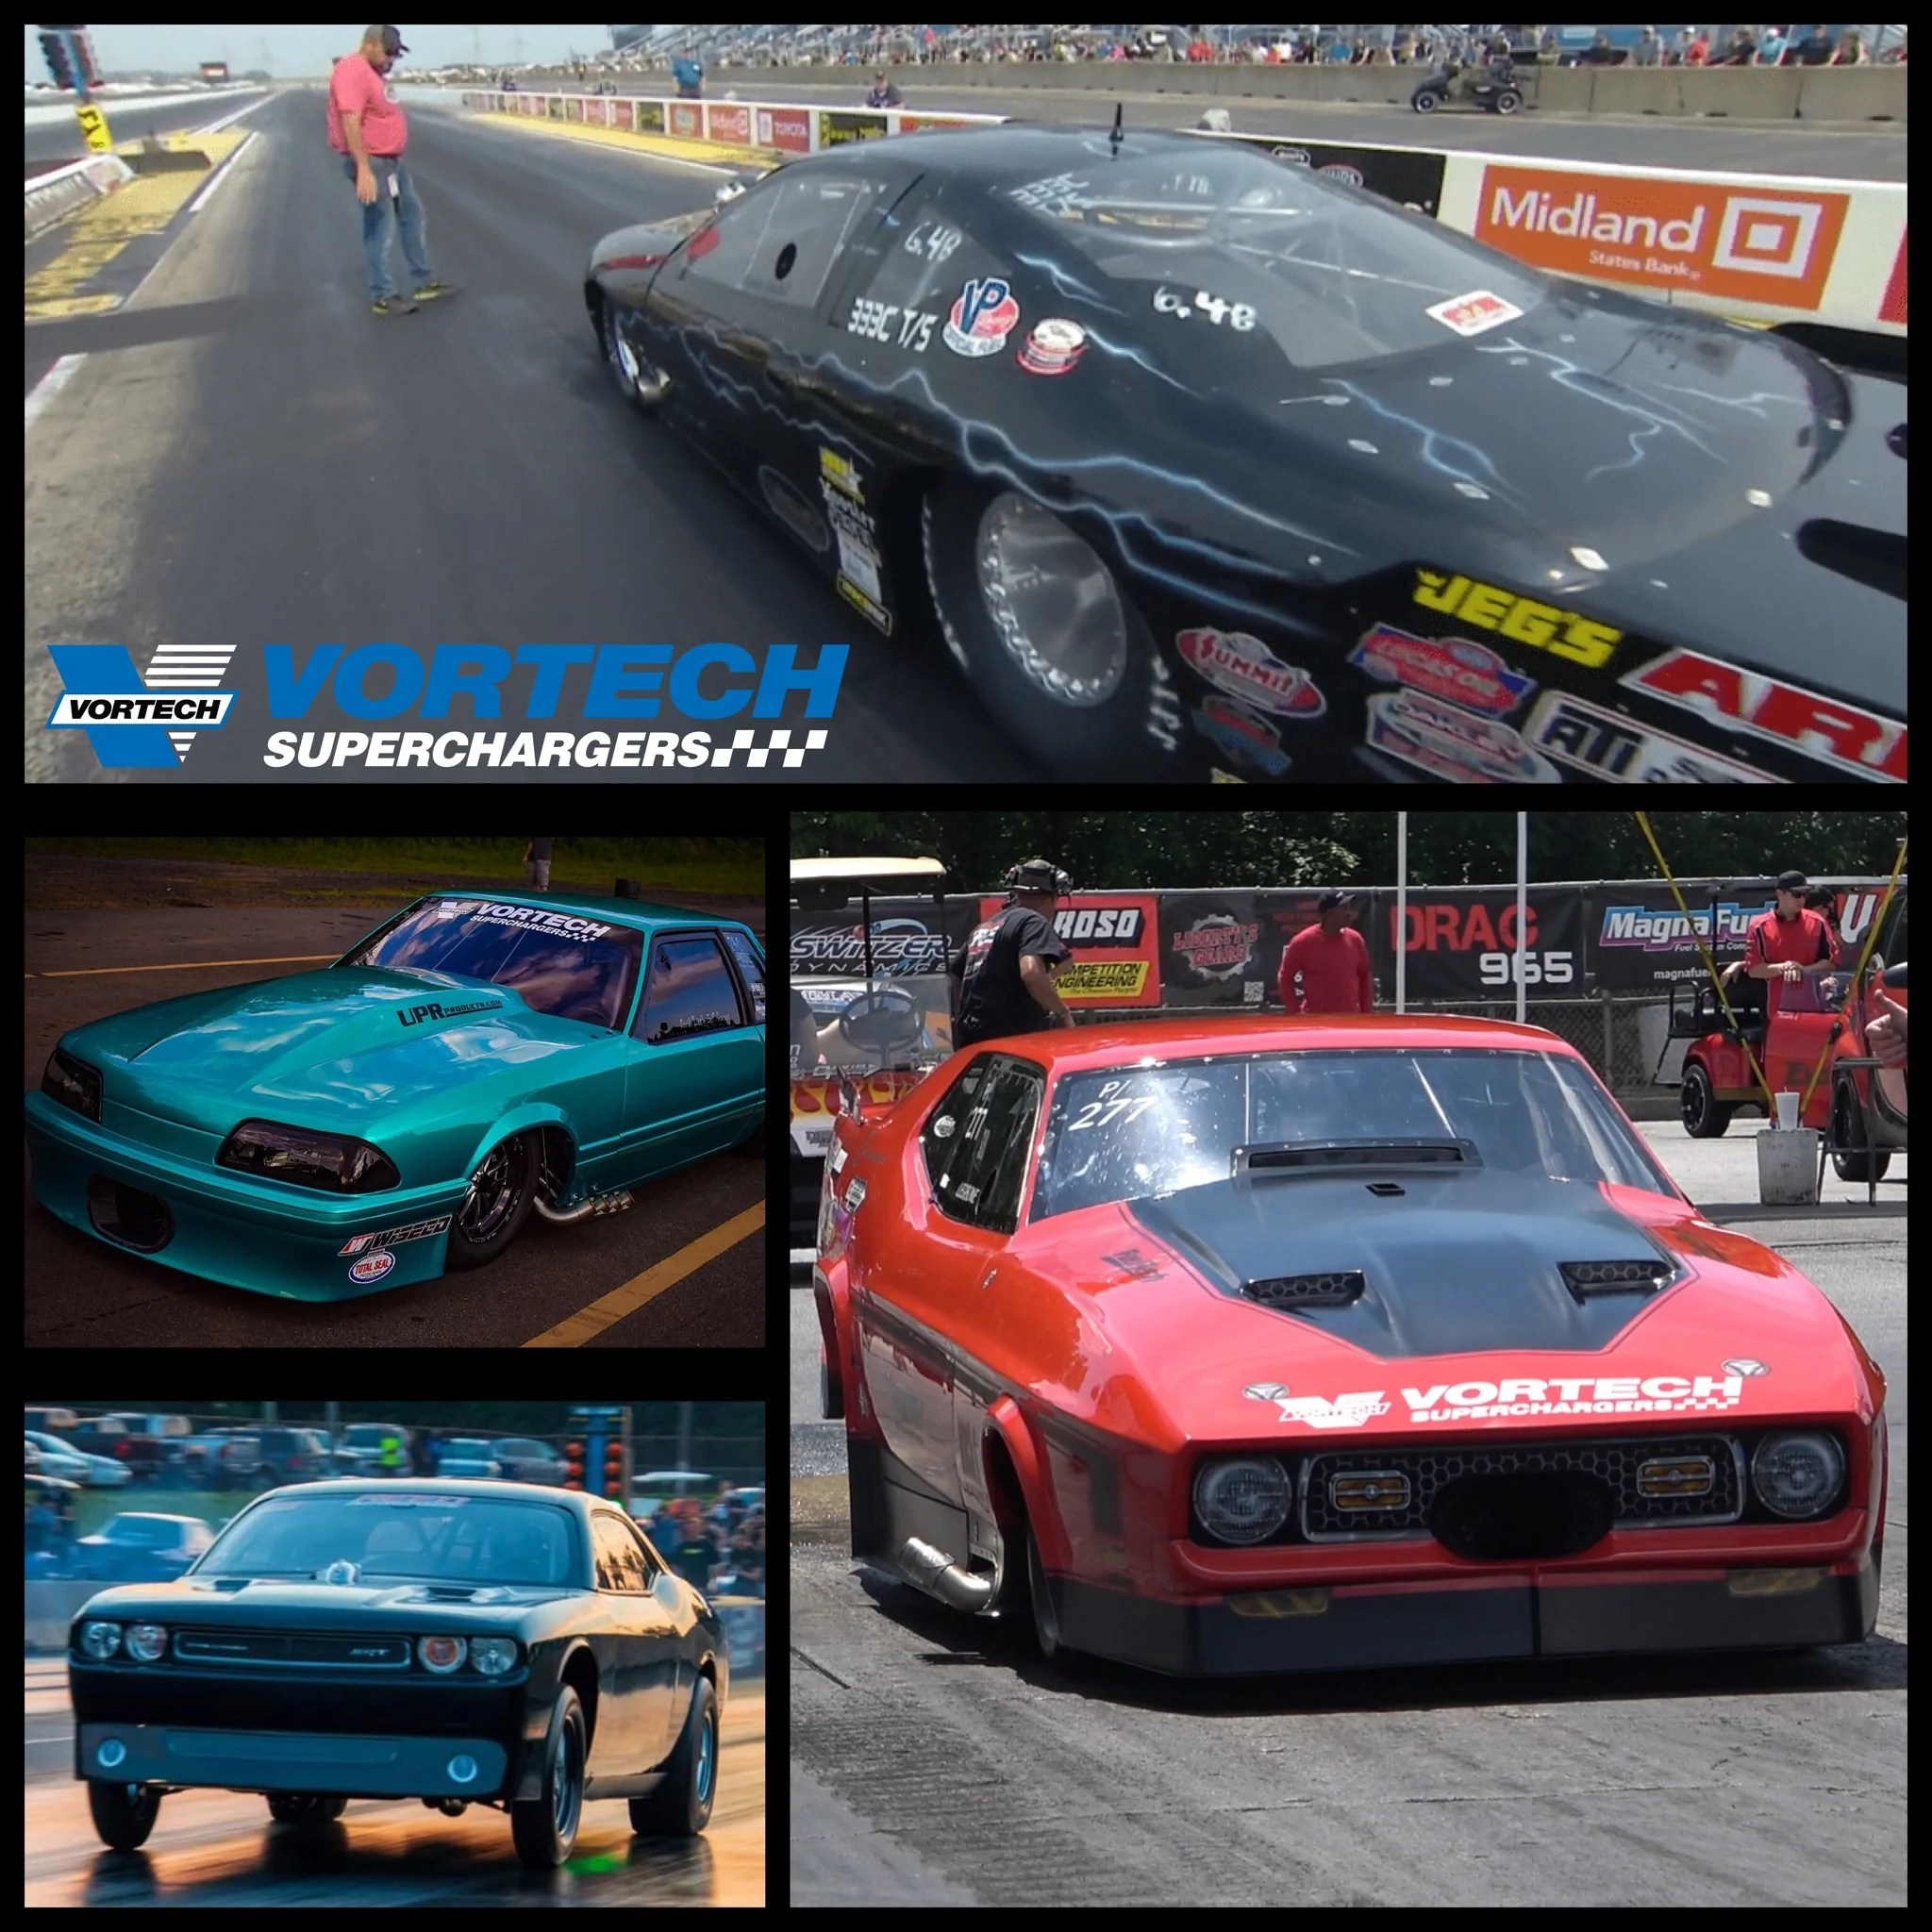 small resolution of vortech supercharged nhra top sportsman champ leggett goes 200 mph in pro boost and more racing action